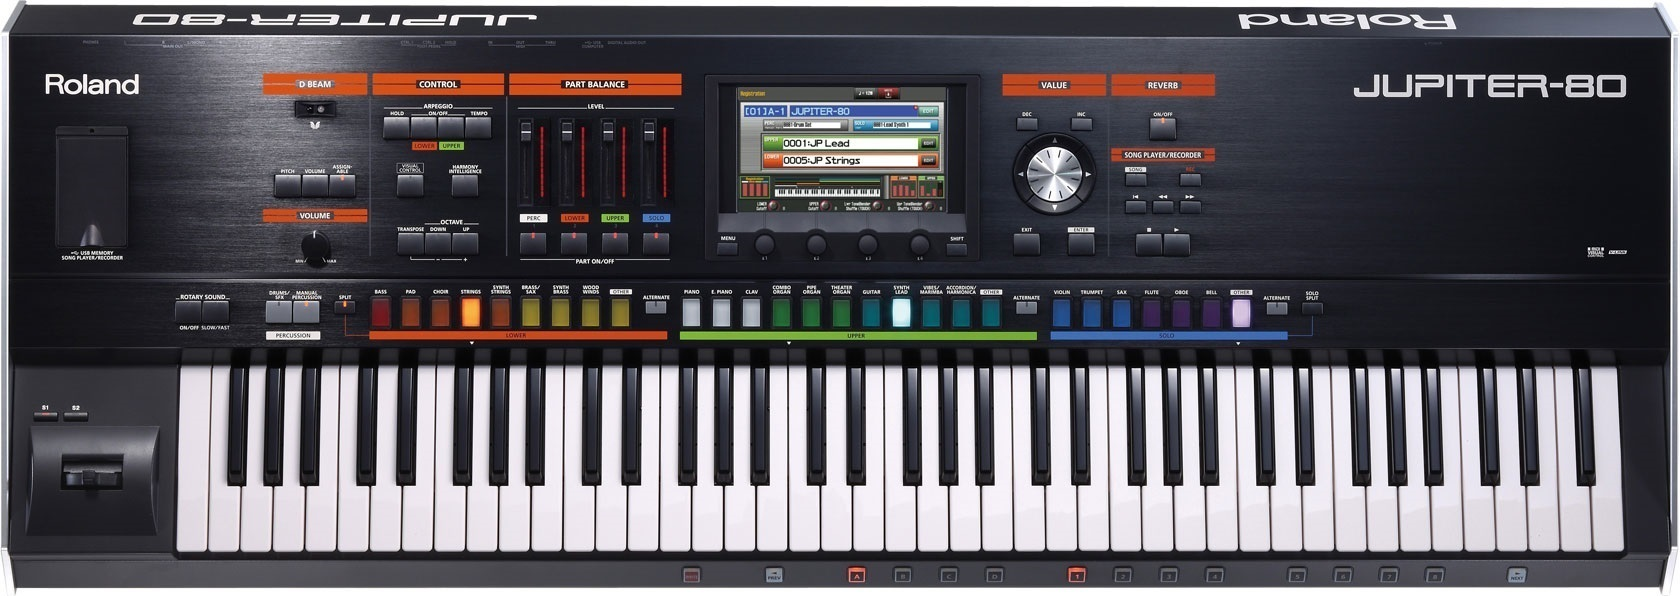 JUPITER-80 | Synthesizer - Roland